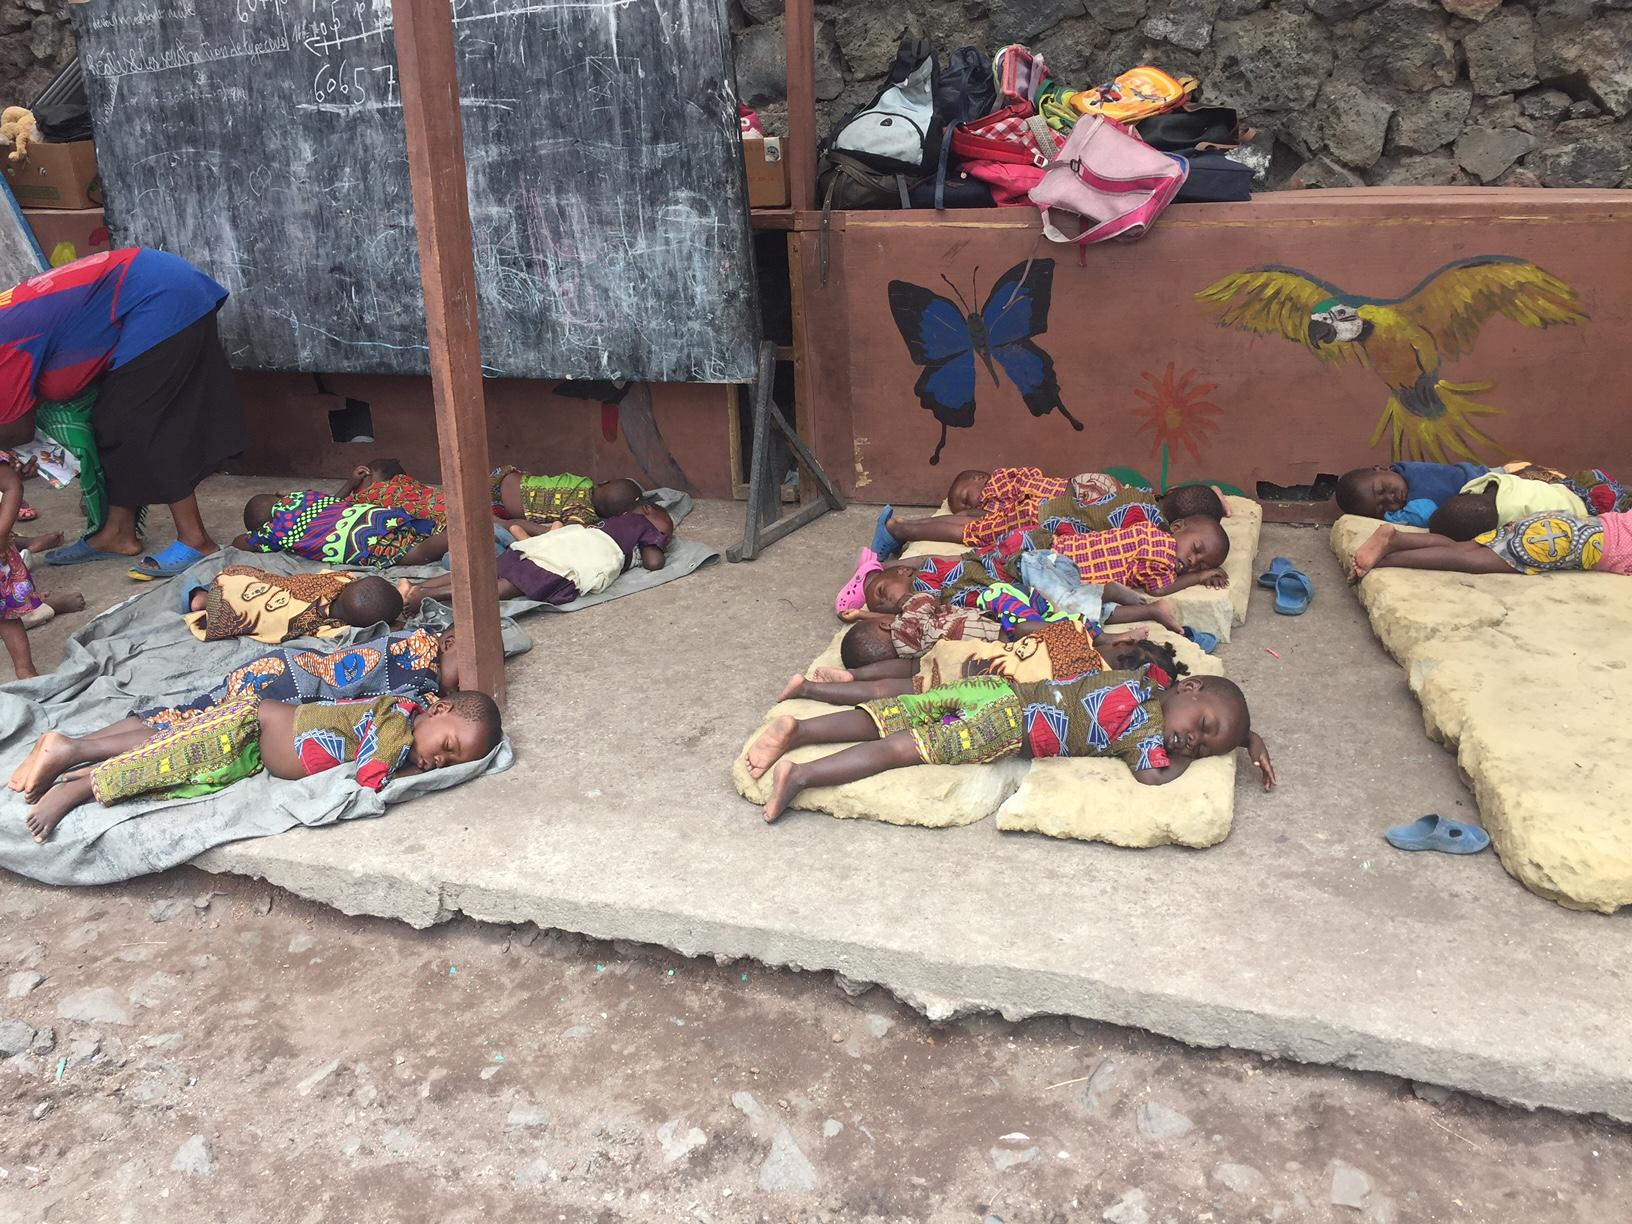 Children sleeping on blankets and mattresses.